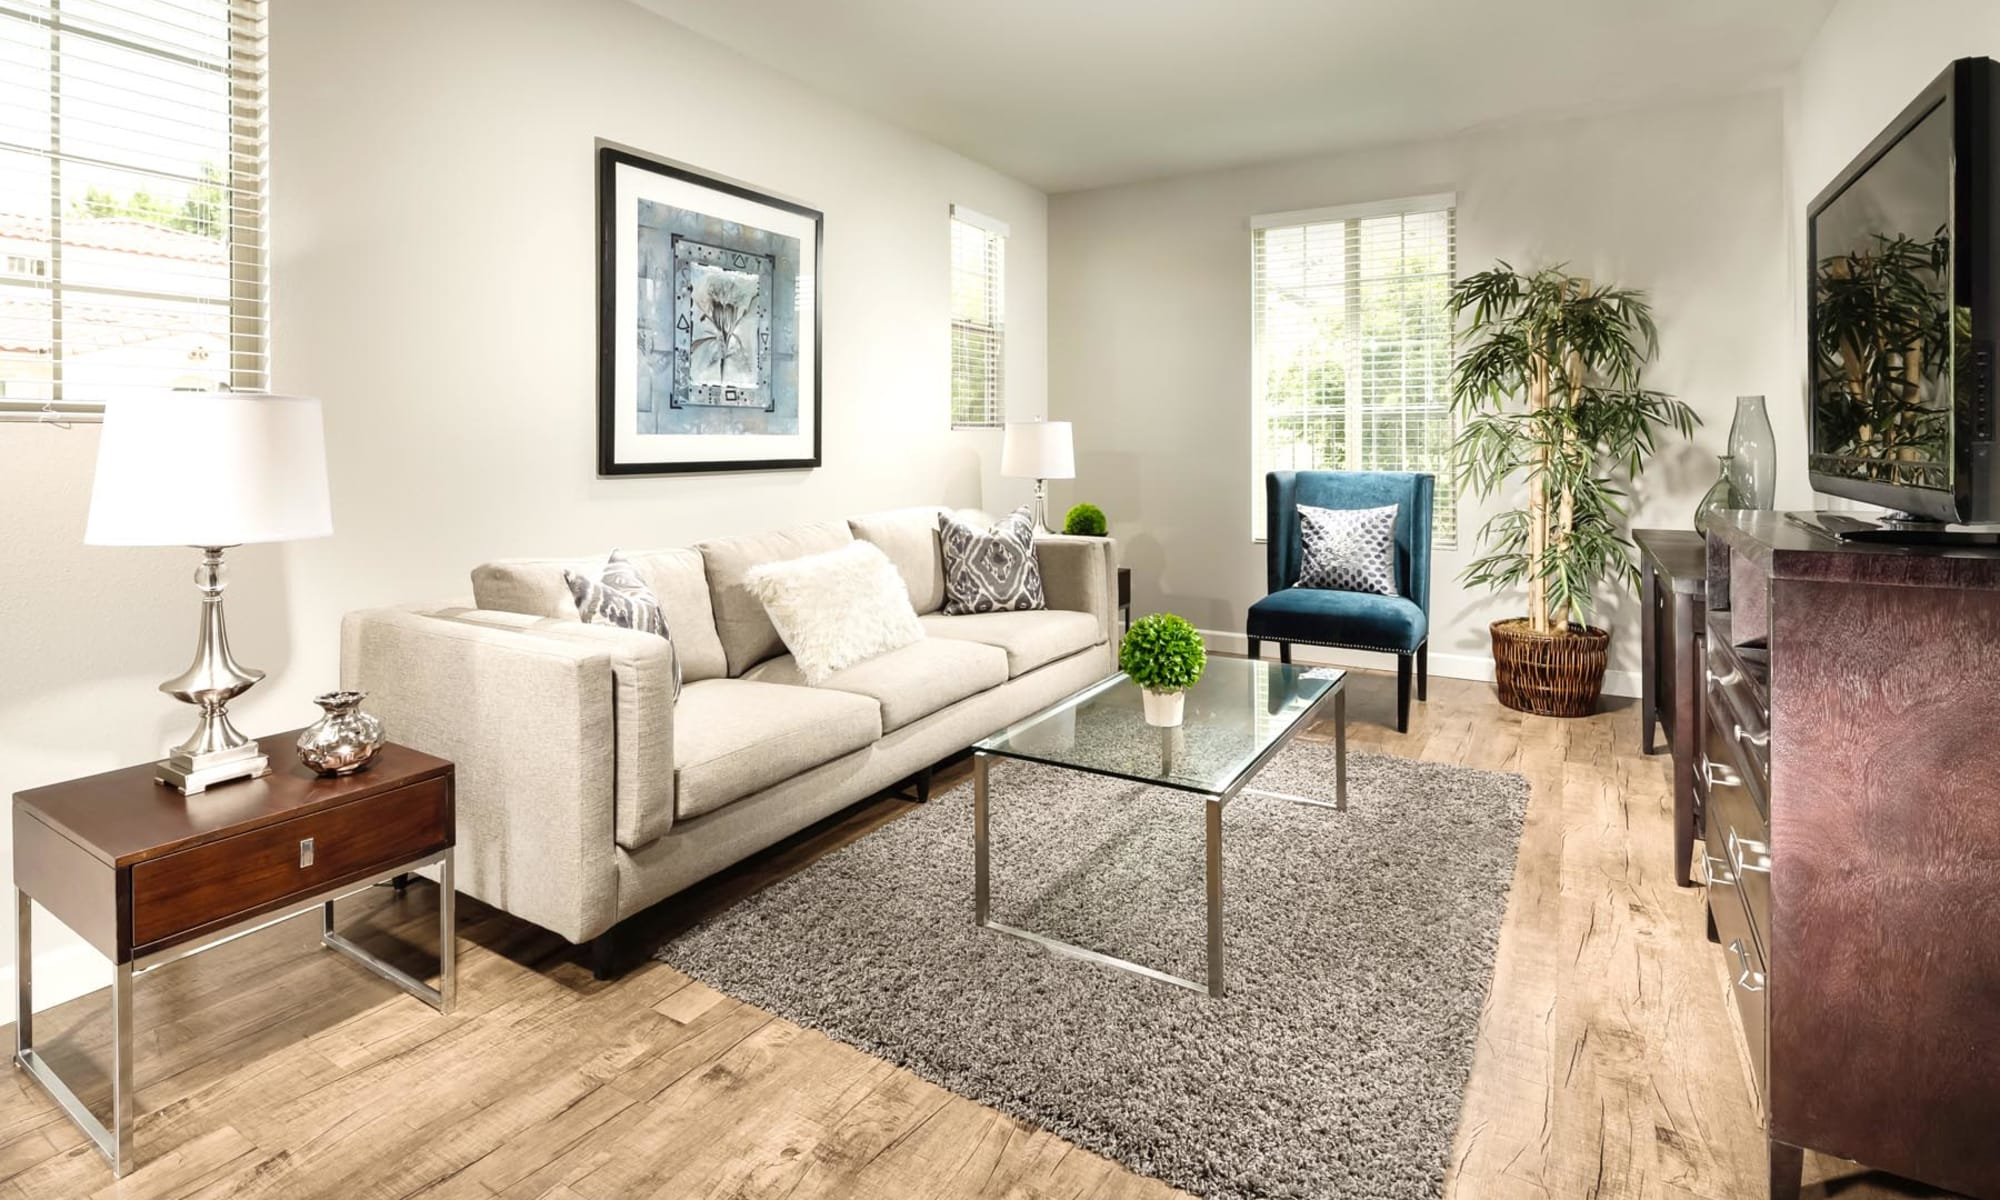 Living room with glass coffee table at Mission Hills in Camarillo, California